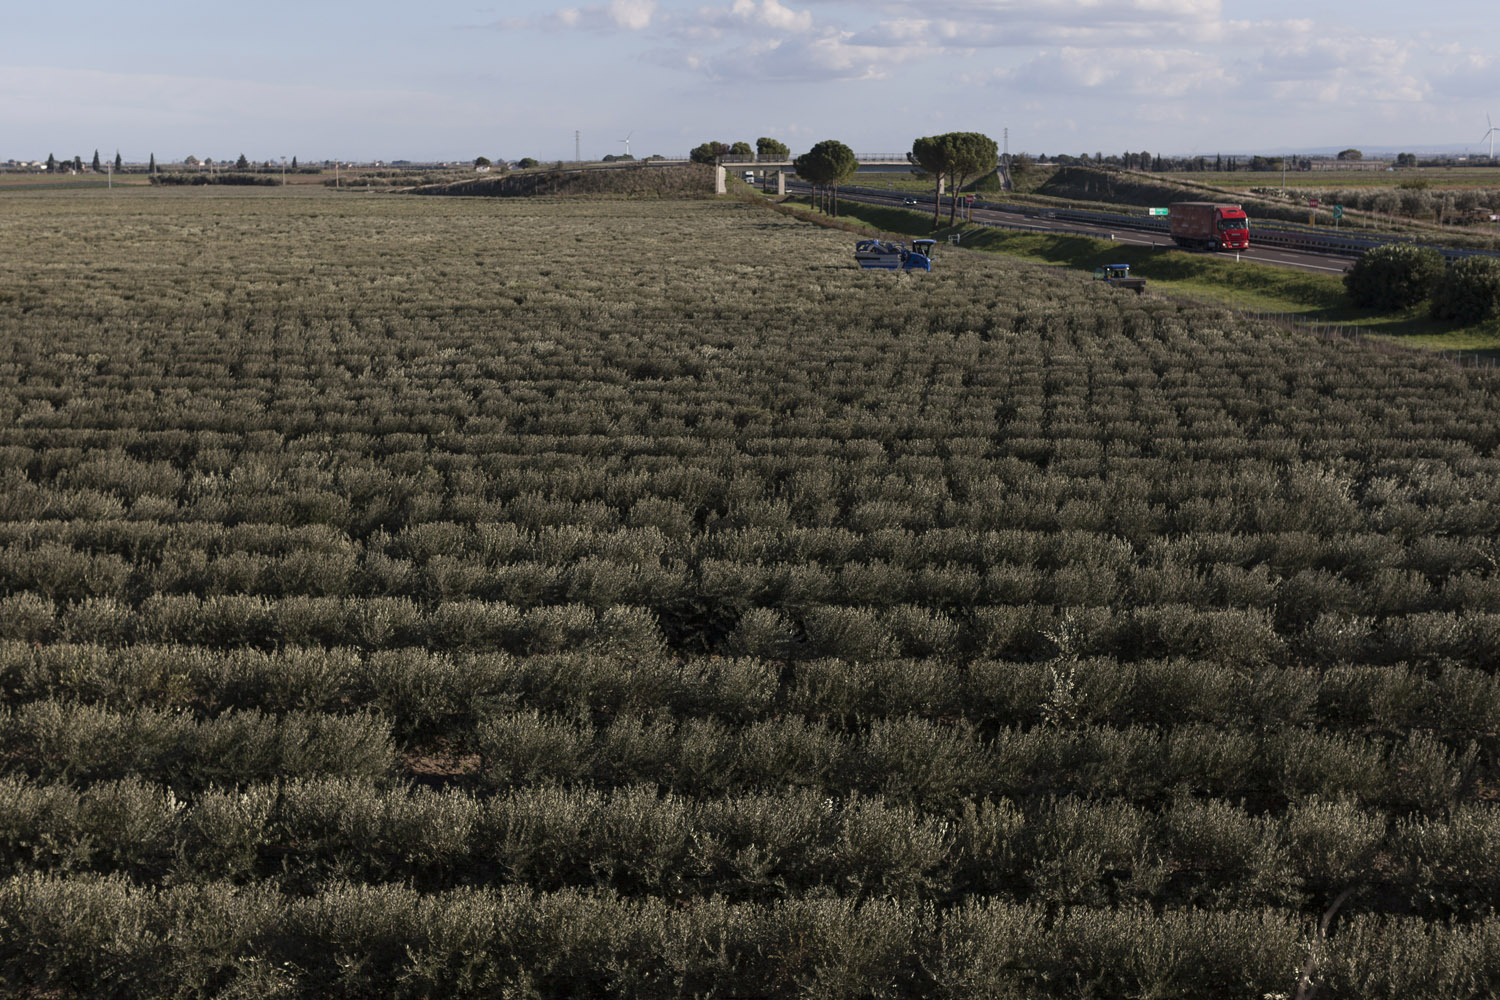 A super-intensive olive grove in the countryside of Foggia, in the north of the region. Modern systems such as these are being proposed as a replacement for Puglia's traditional olive groves, leading to much controversy about their environmental sustainability, their resilience to future pathogens and the wisdom of persisting in a monocultural approach to olive cultivation. (2018)